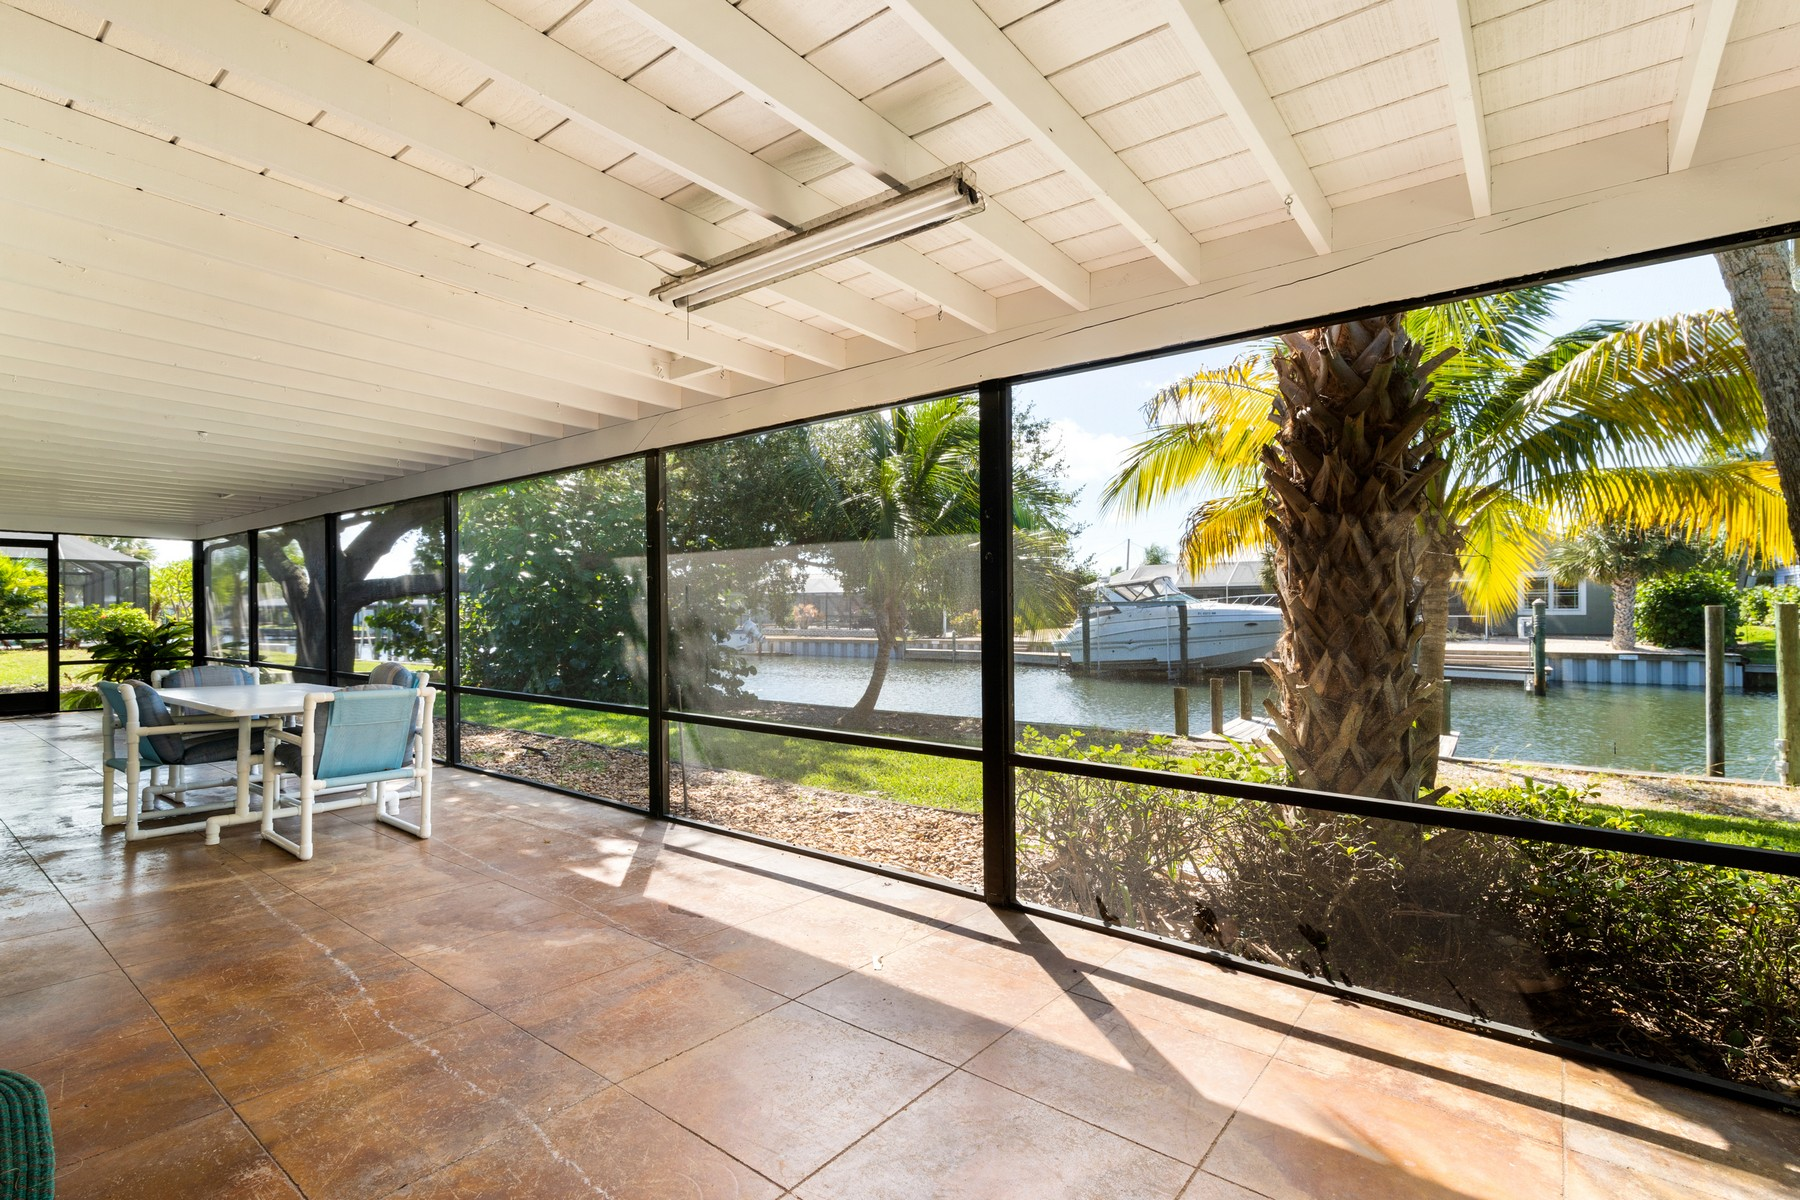 Additional photo for property listing at Charming Canal Front Home with Airy, Open Layout 393 Nikomas Way Melbourne Beach, Florida 32951 United States